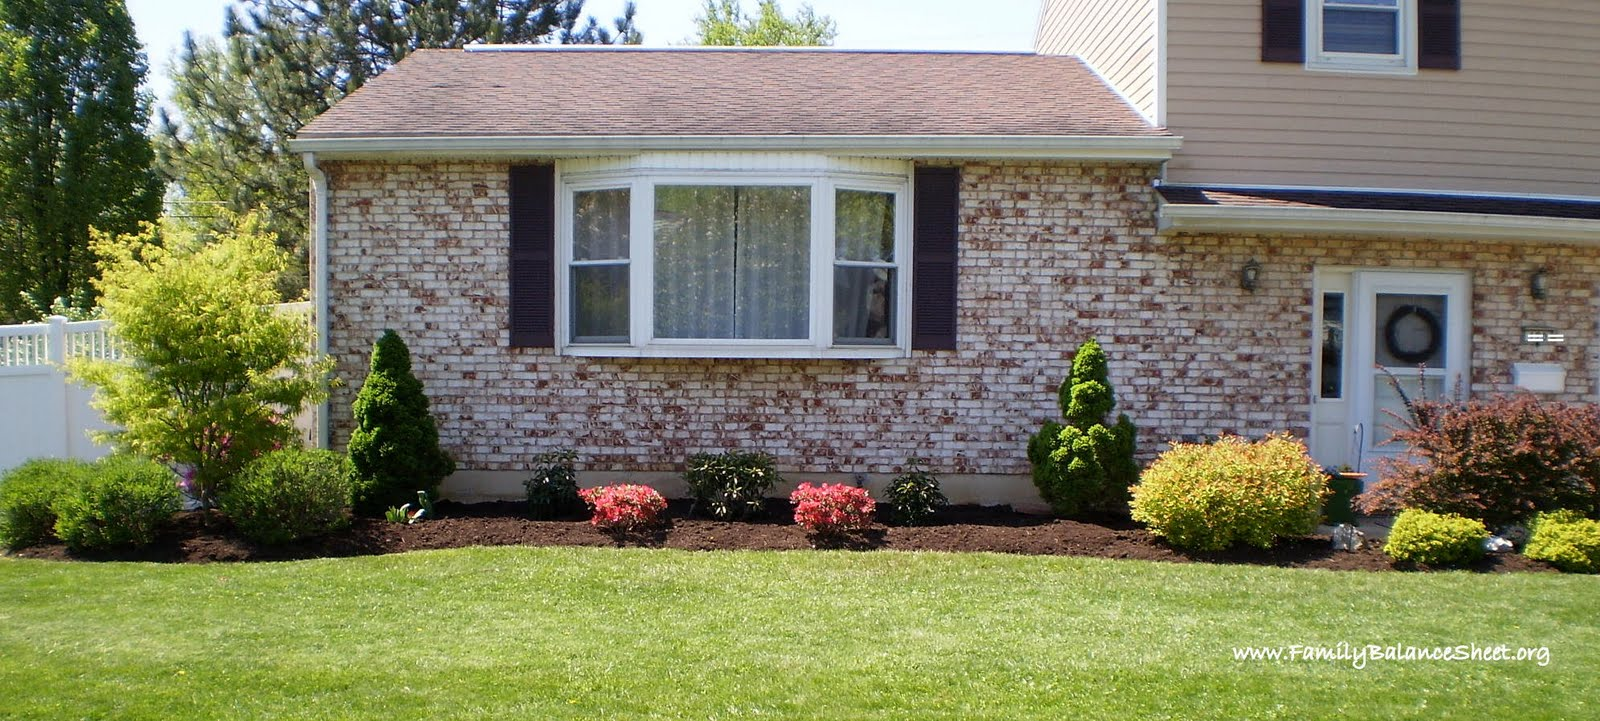 15 tips to help you design your front yard save money too for Your garden design